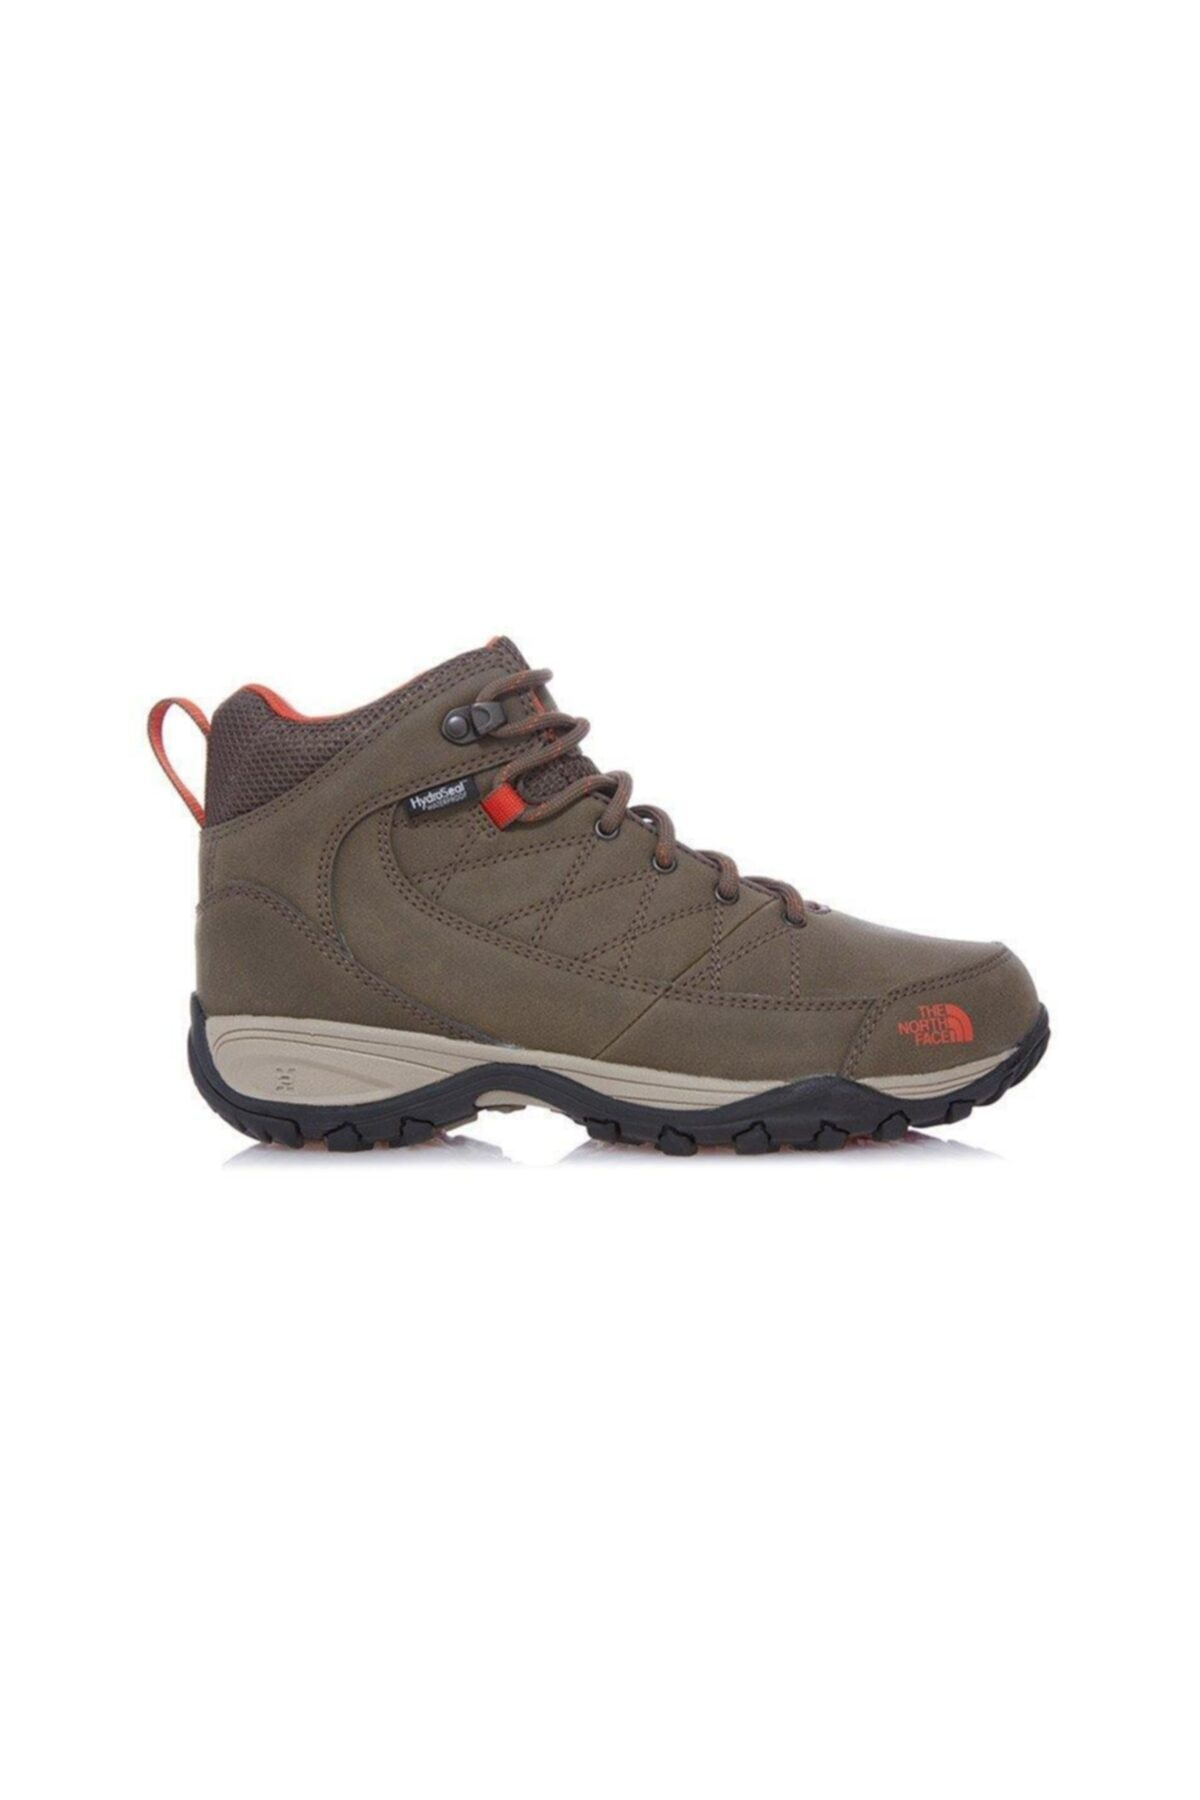 THE NORTH FACE W STORM STRIKE WP Haki Kadın Outdoor Bot 100446220 2